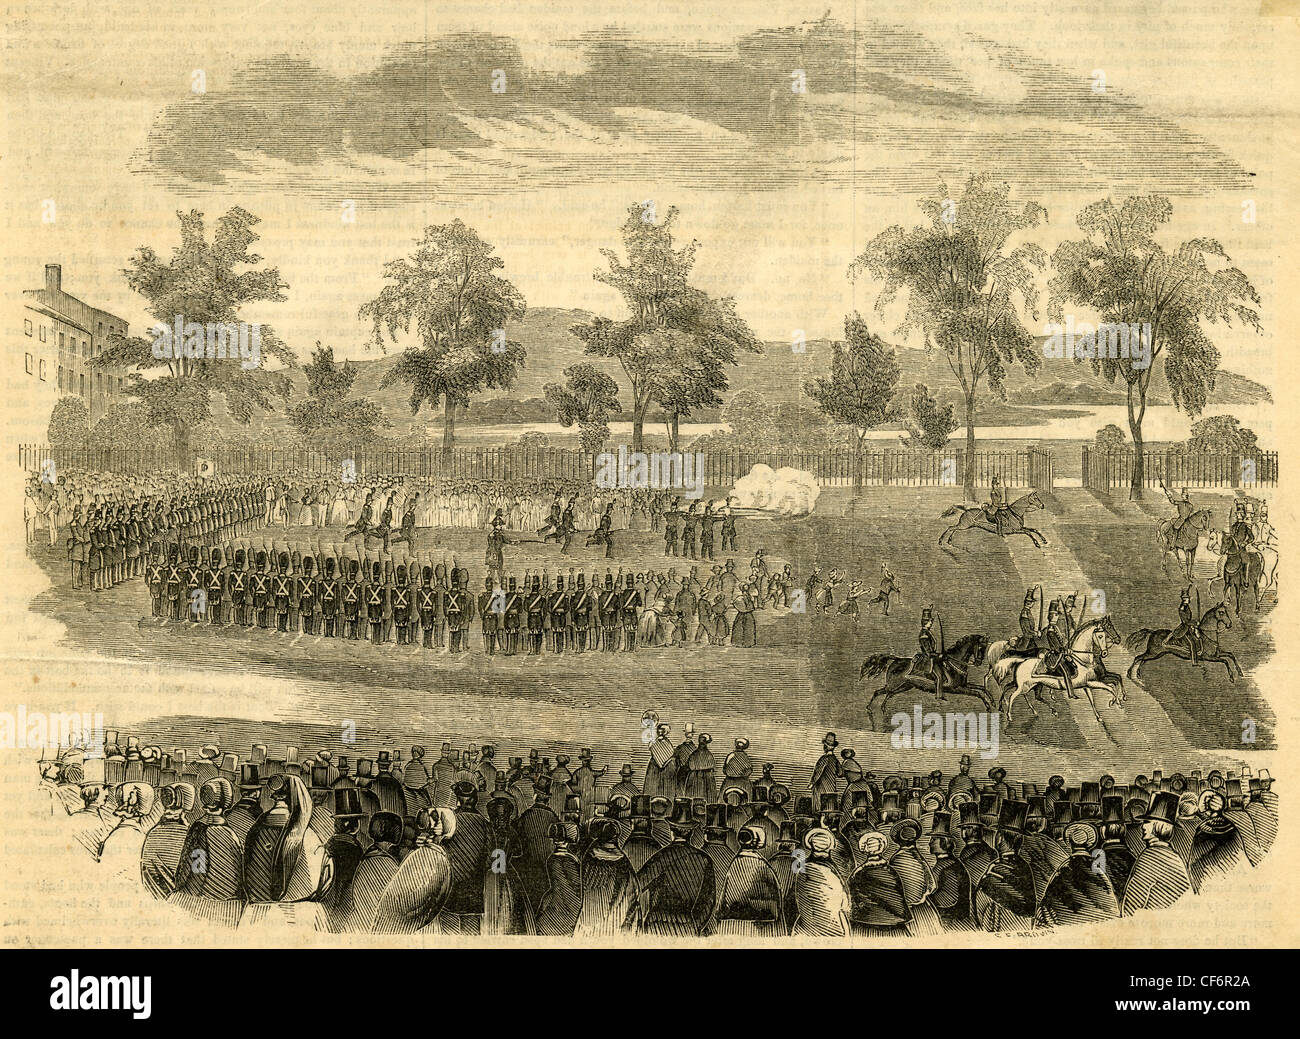 1853 engraving, 'First Battalion of Rifles of West Newbury, on Boston Common.' - Stock Image